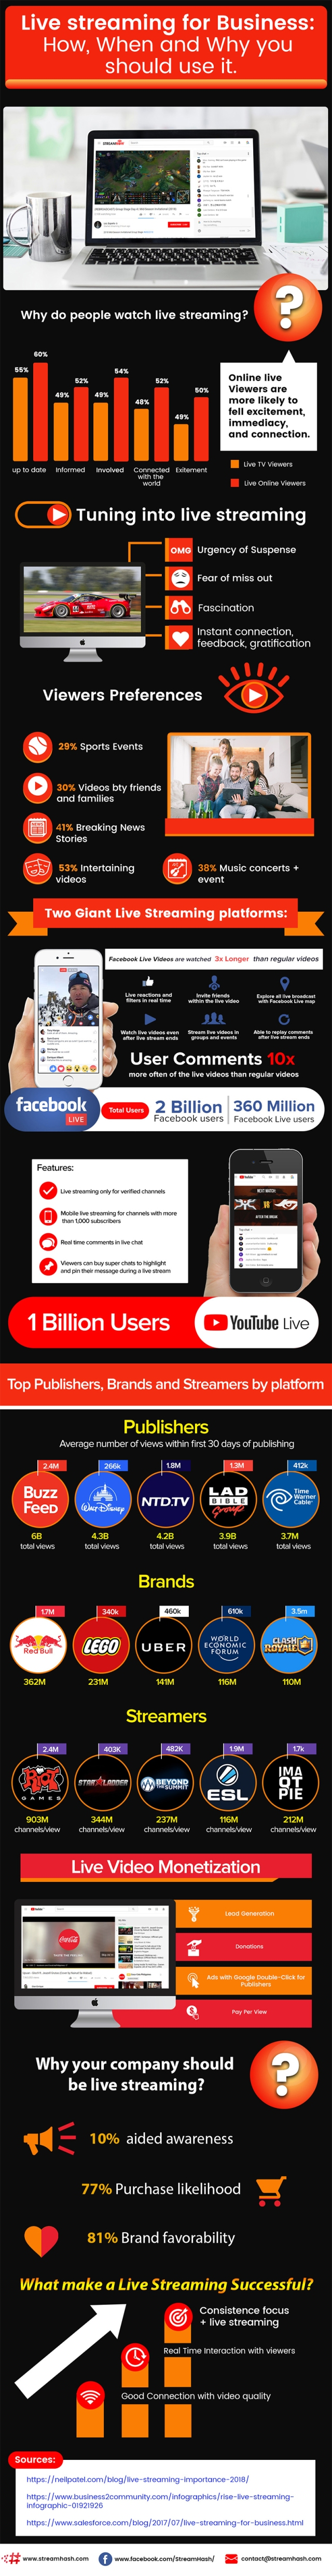 How-Why-You-Should-Add-Live-Streaming-to-Your-Social-Media-Strategy